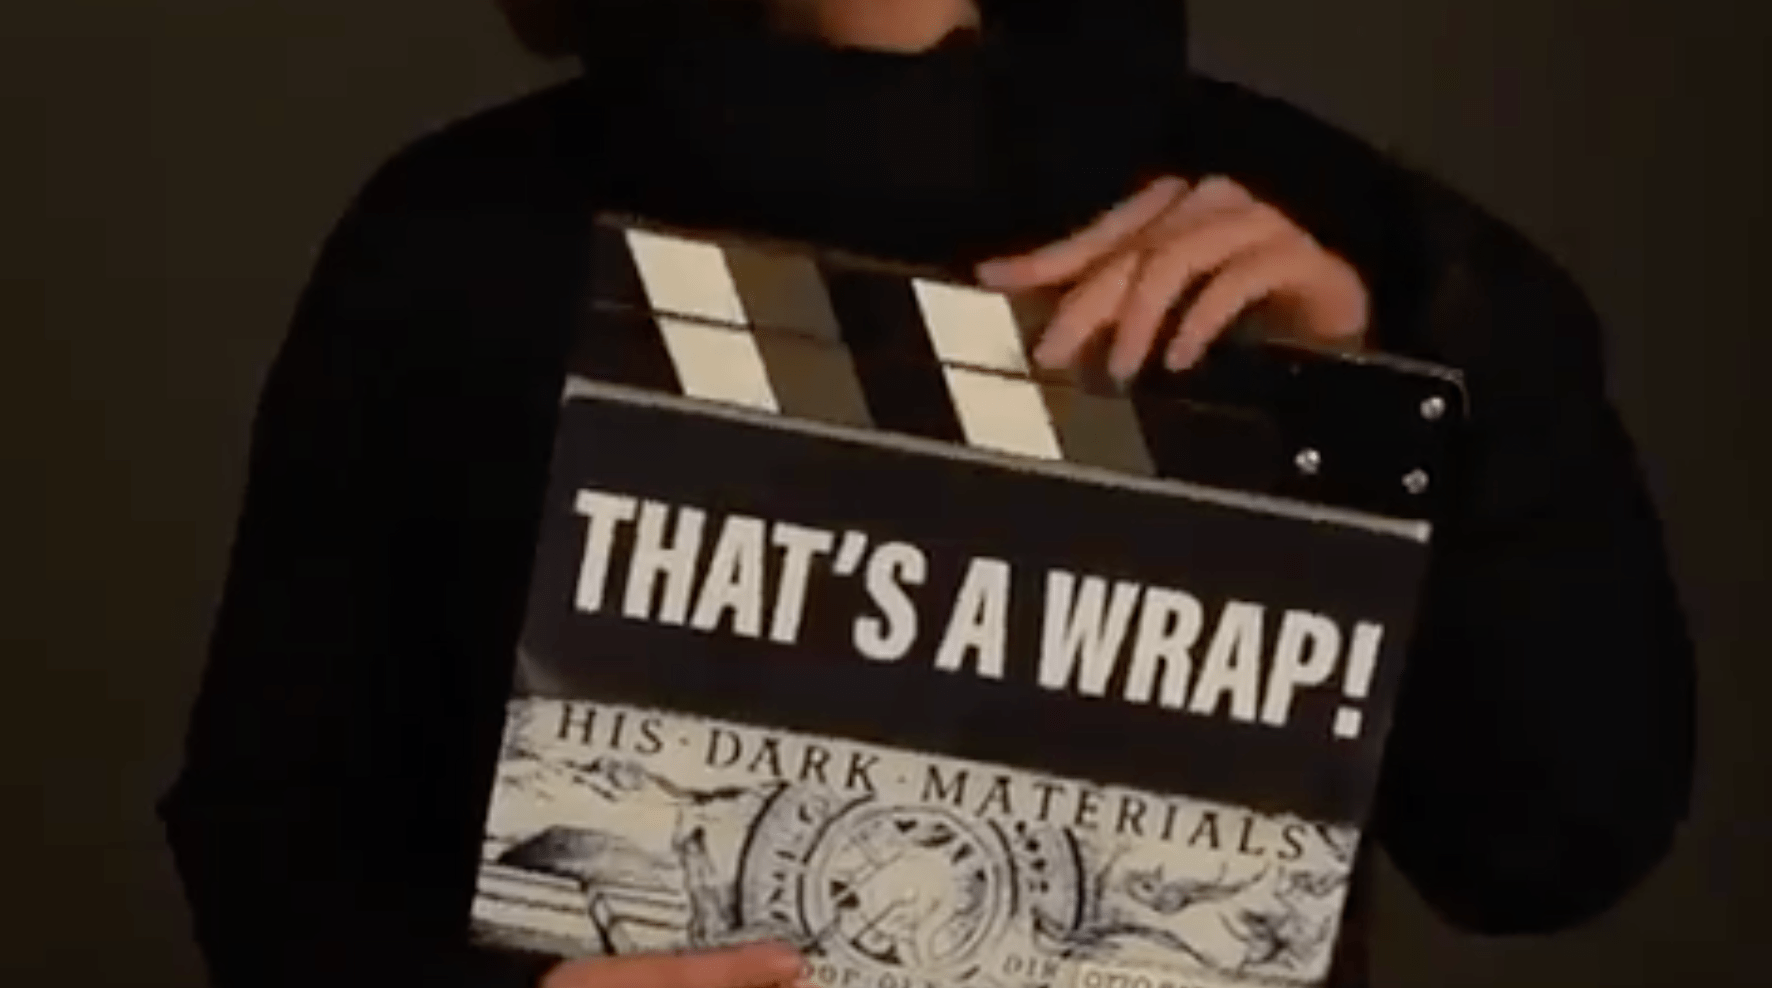 His Dark Materials star Dafne Keen reveals that filming has finished on series one of the highly anticipated TV adaptation (Twitter)